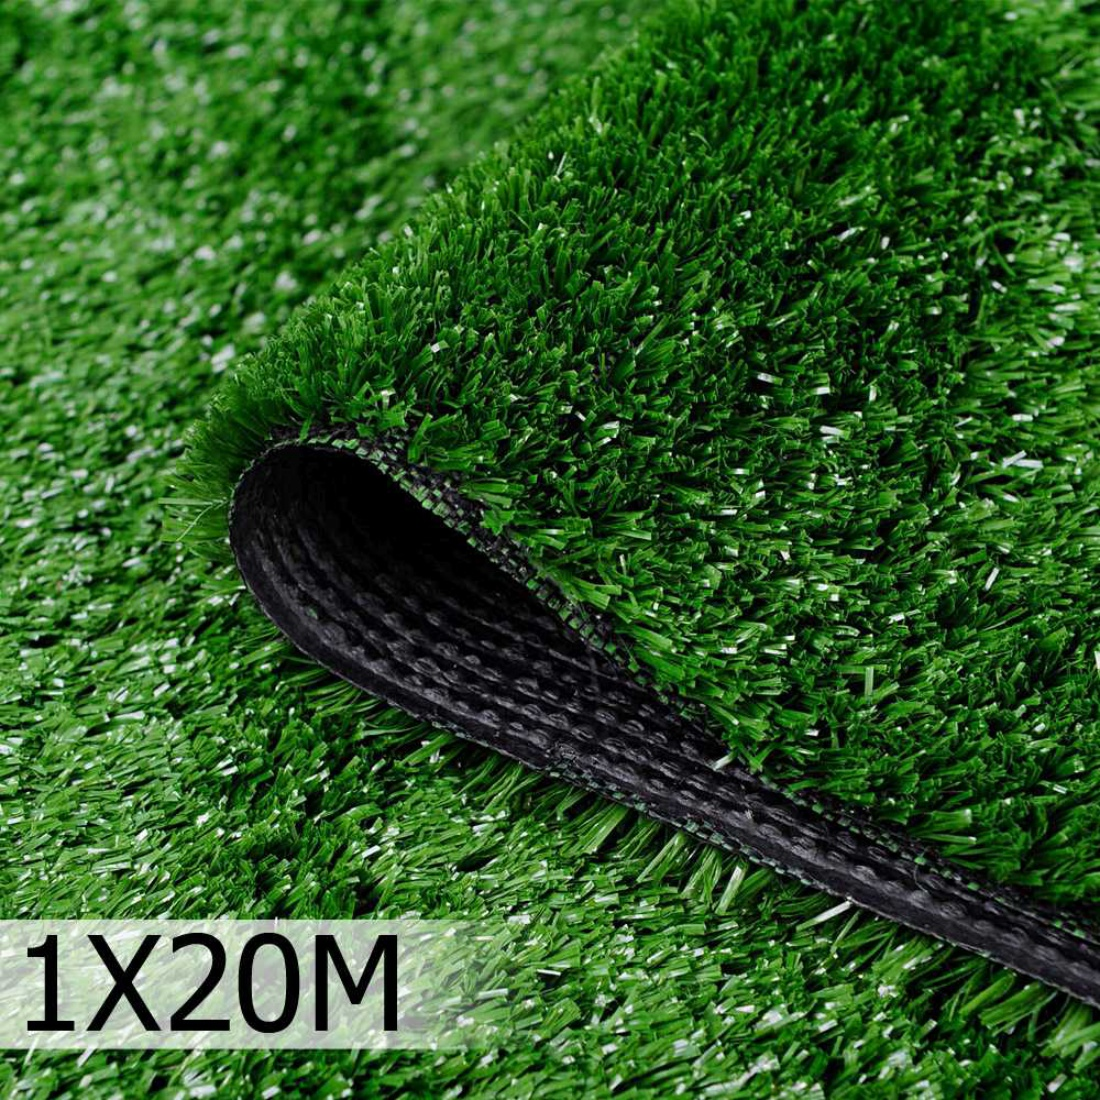 Artificial Grass 20 SQM Olive Green Polypropylene Lawn Flooring 1X20M Green